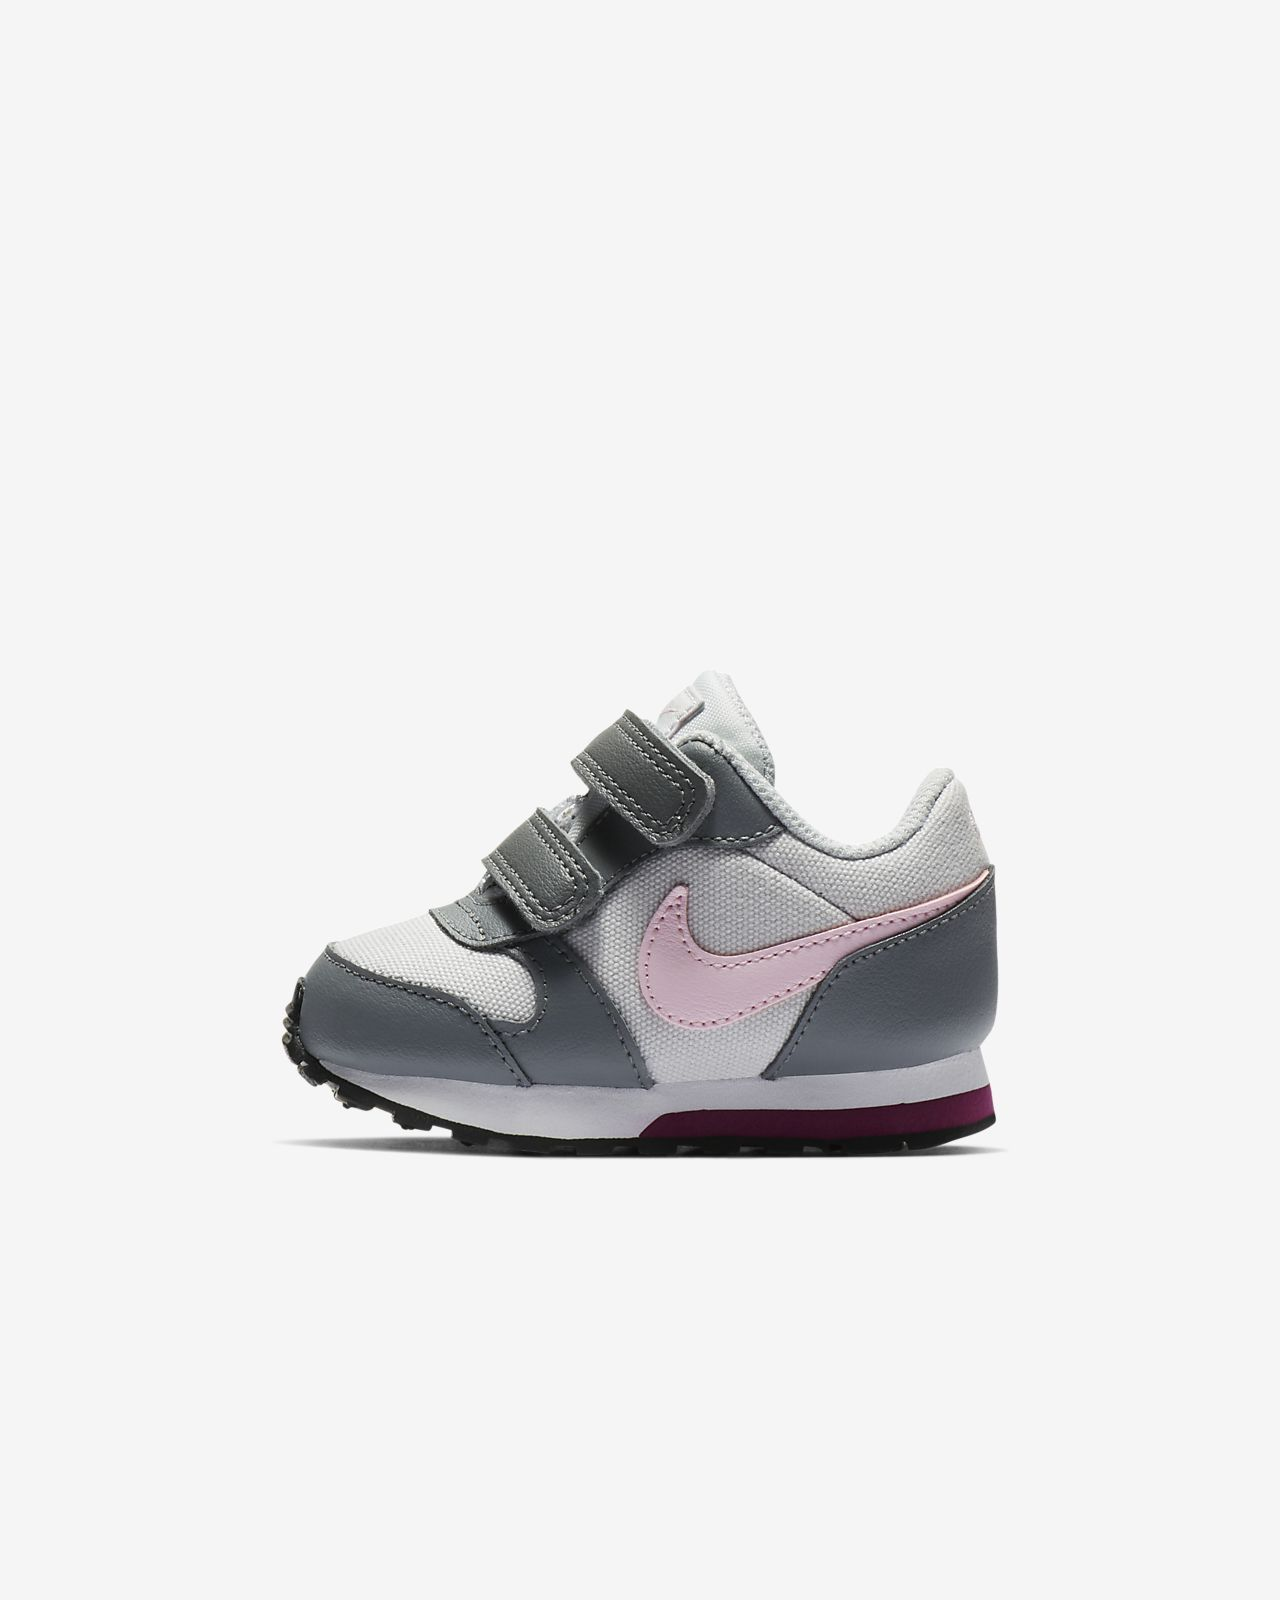 2f1f43fc87 Nike MD Runner 2 Baby & Toddler Shoe. Nike.com AU